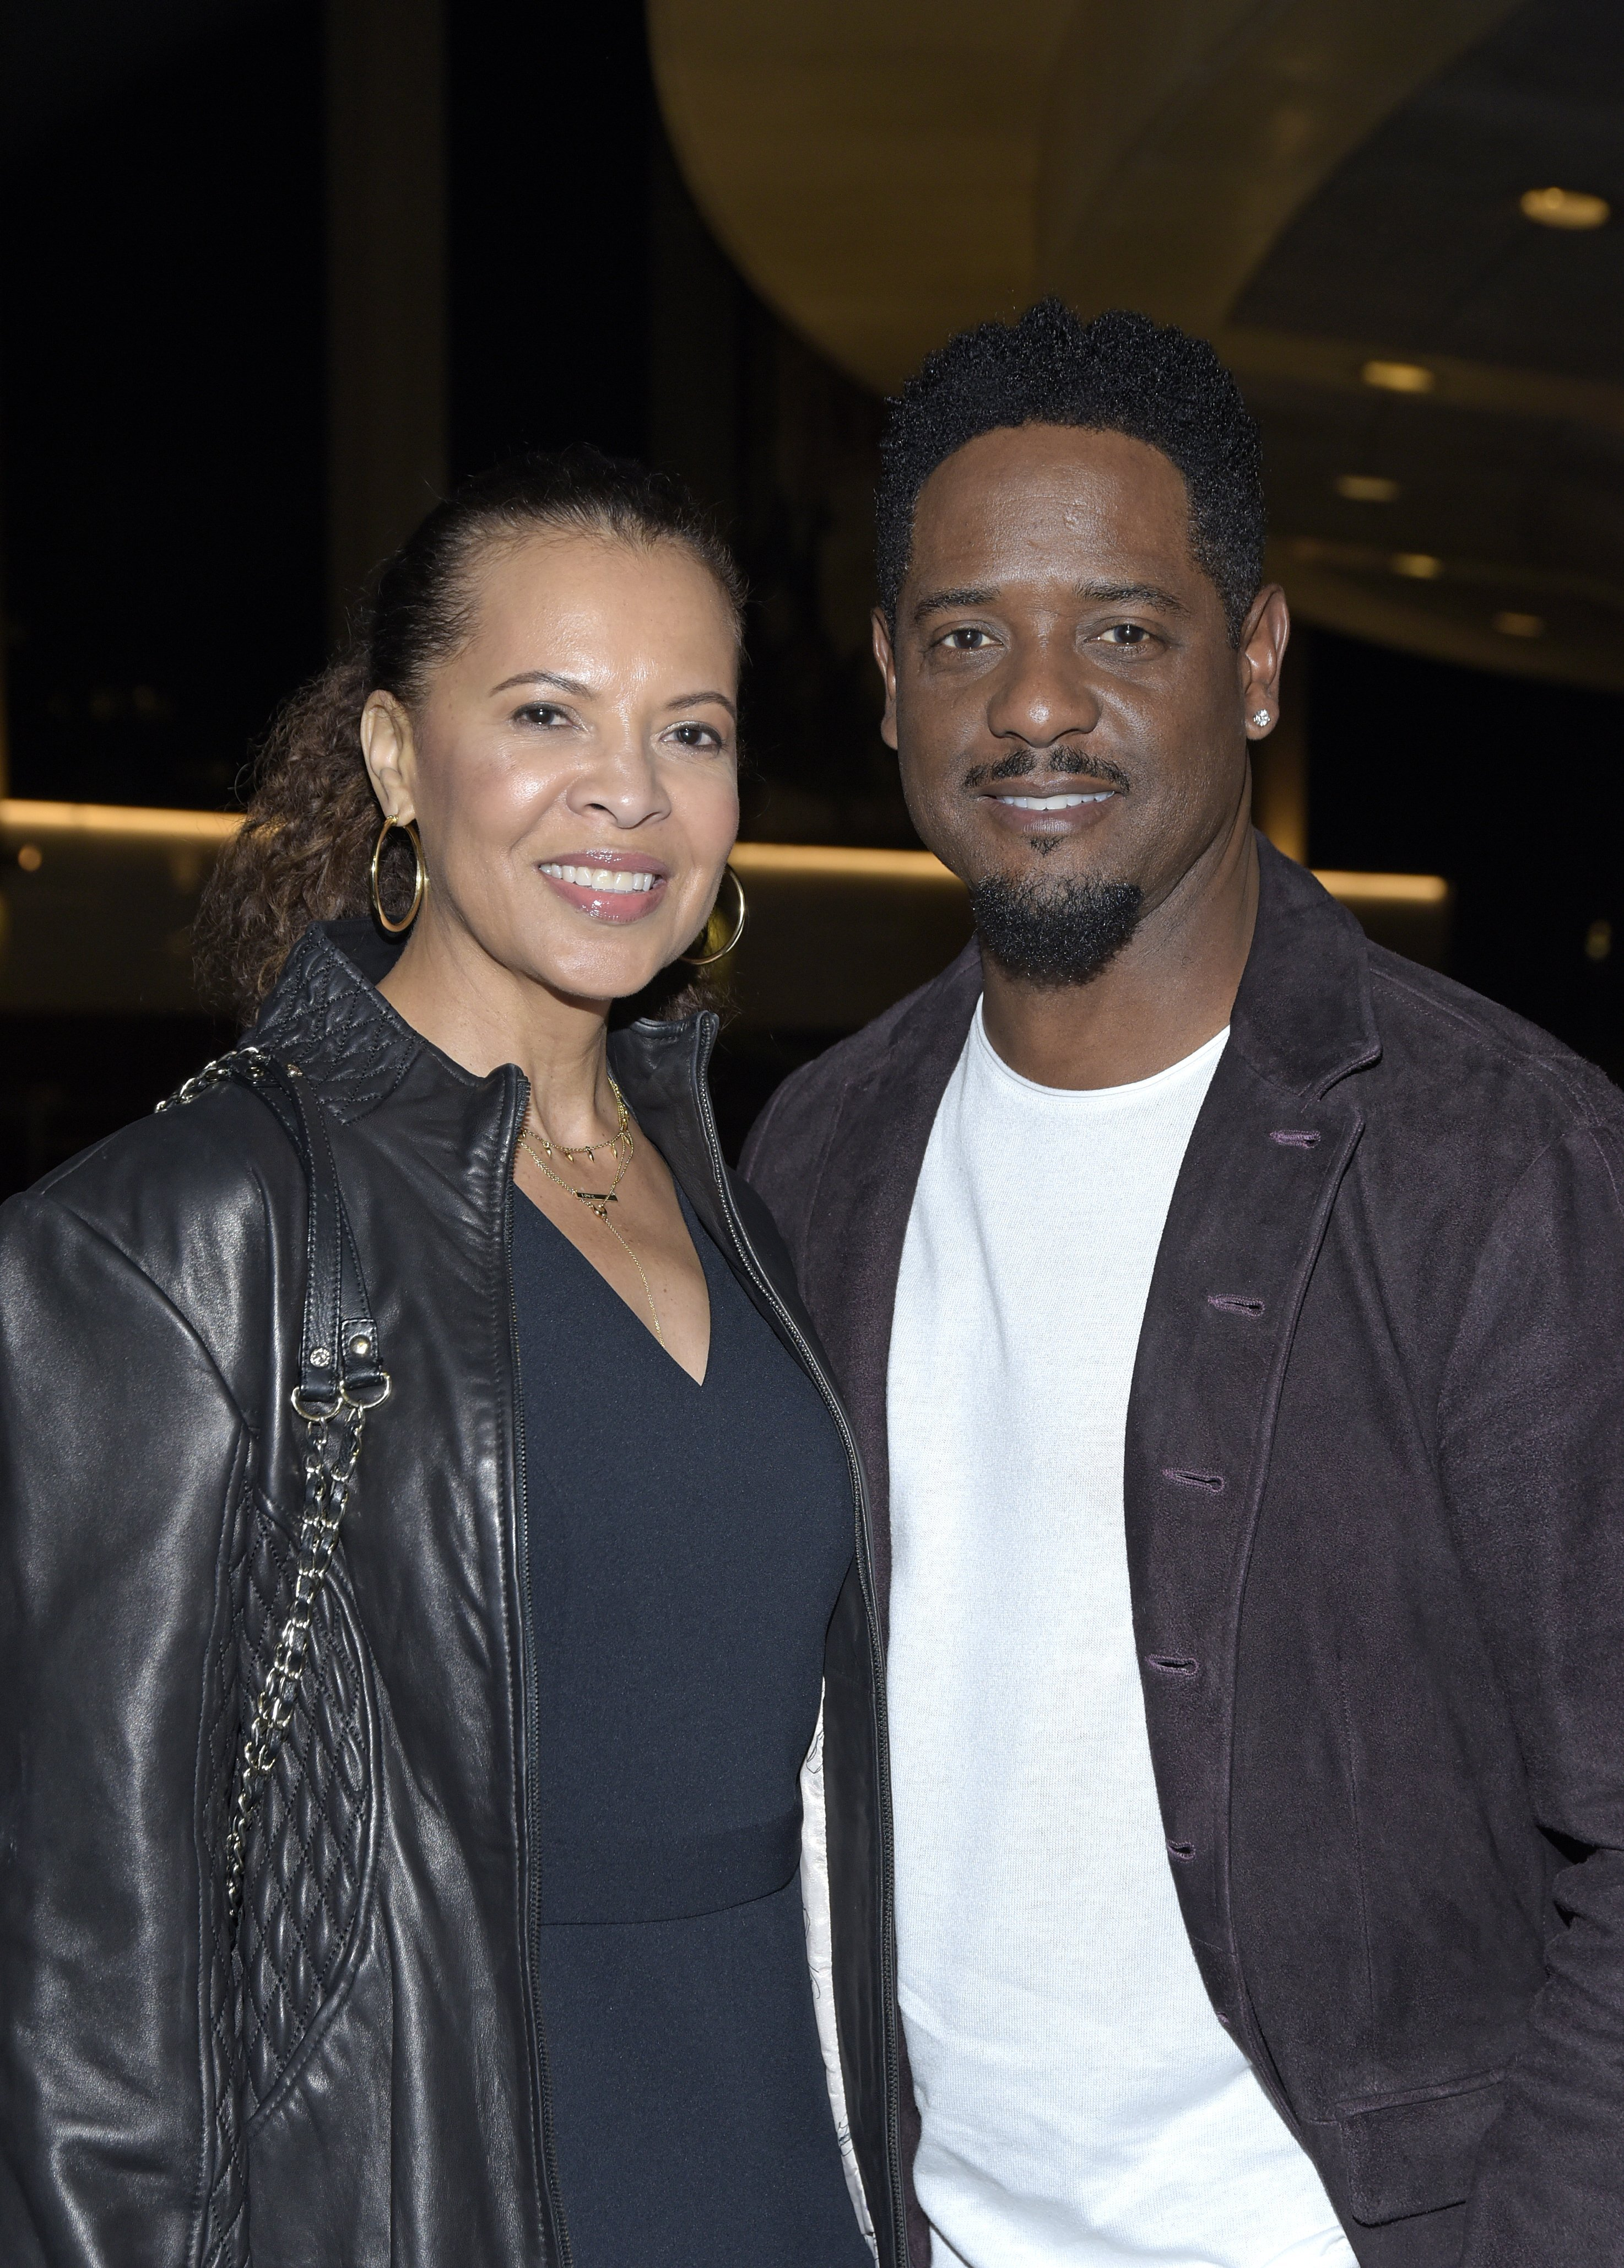 """Desiree DaCosta & Blair Underwood at the opening night of """"Lackawanna Blues"""" on Mar. 13, 2019 in California 